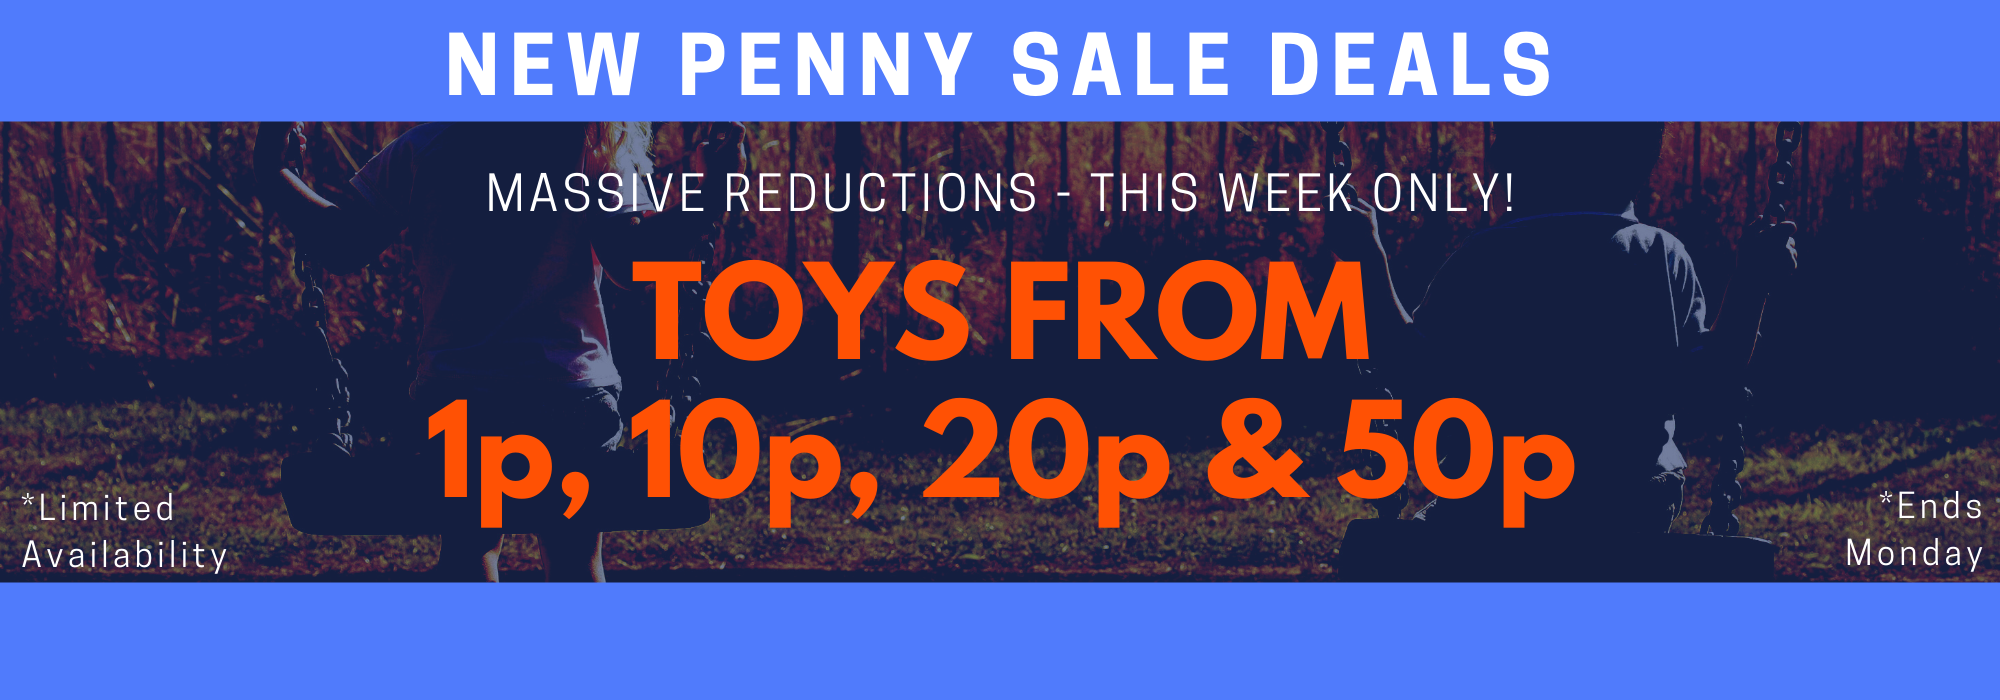 Penny Toy Deals